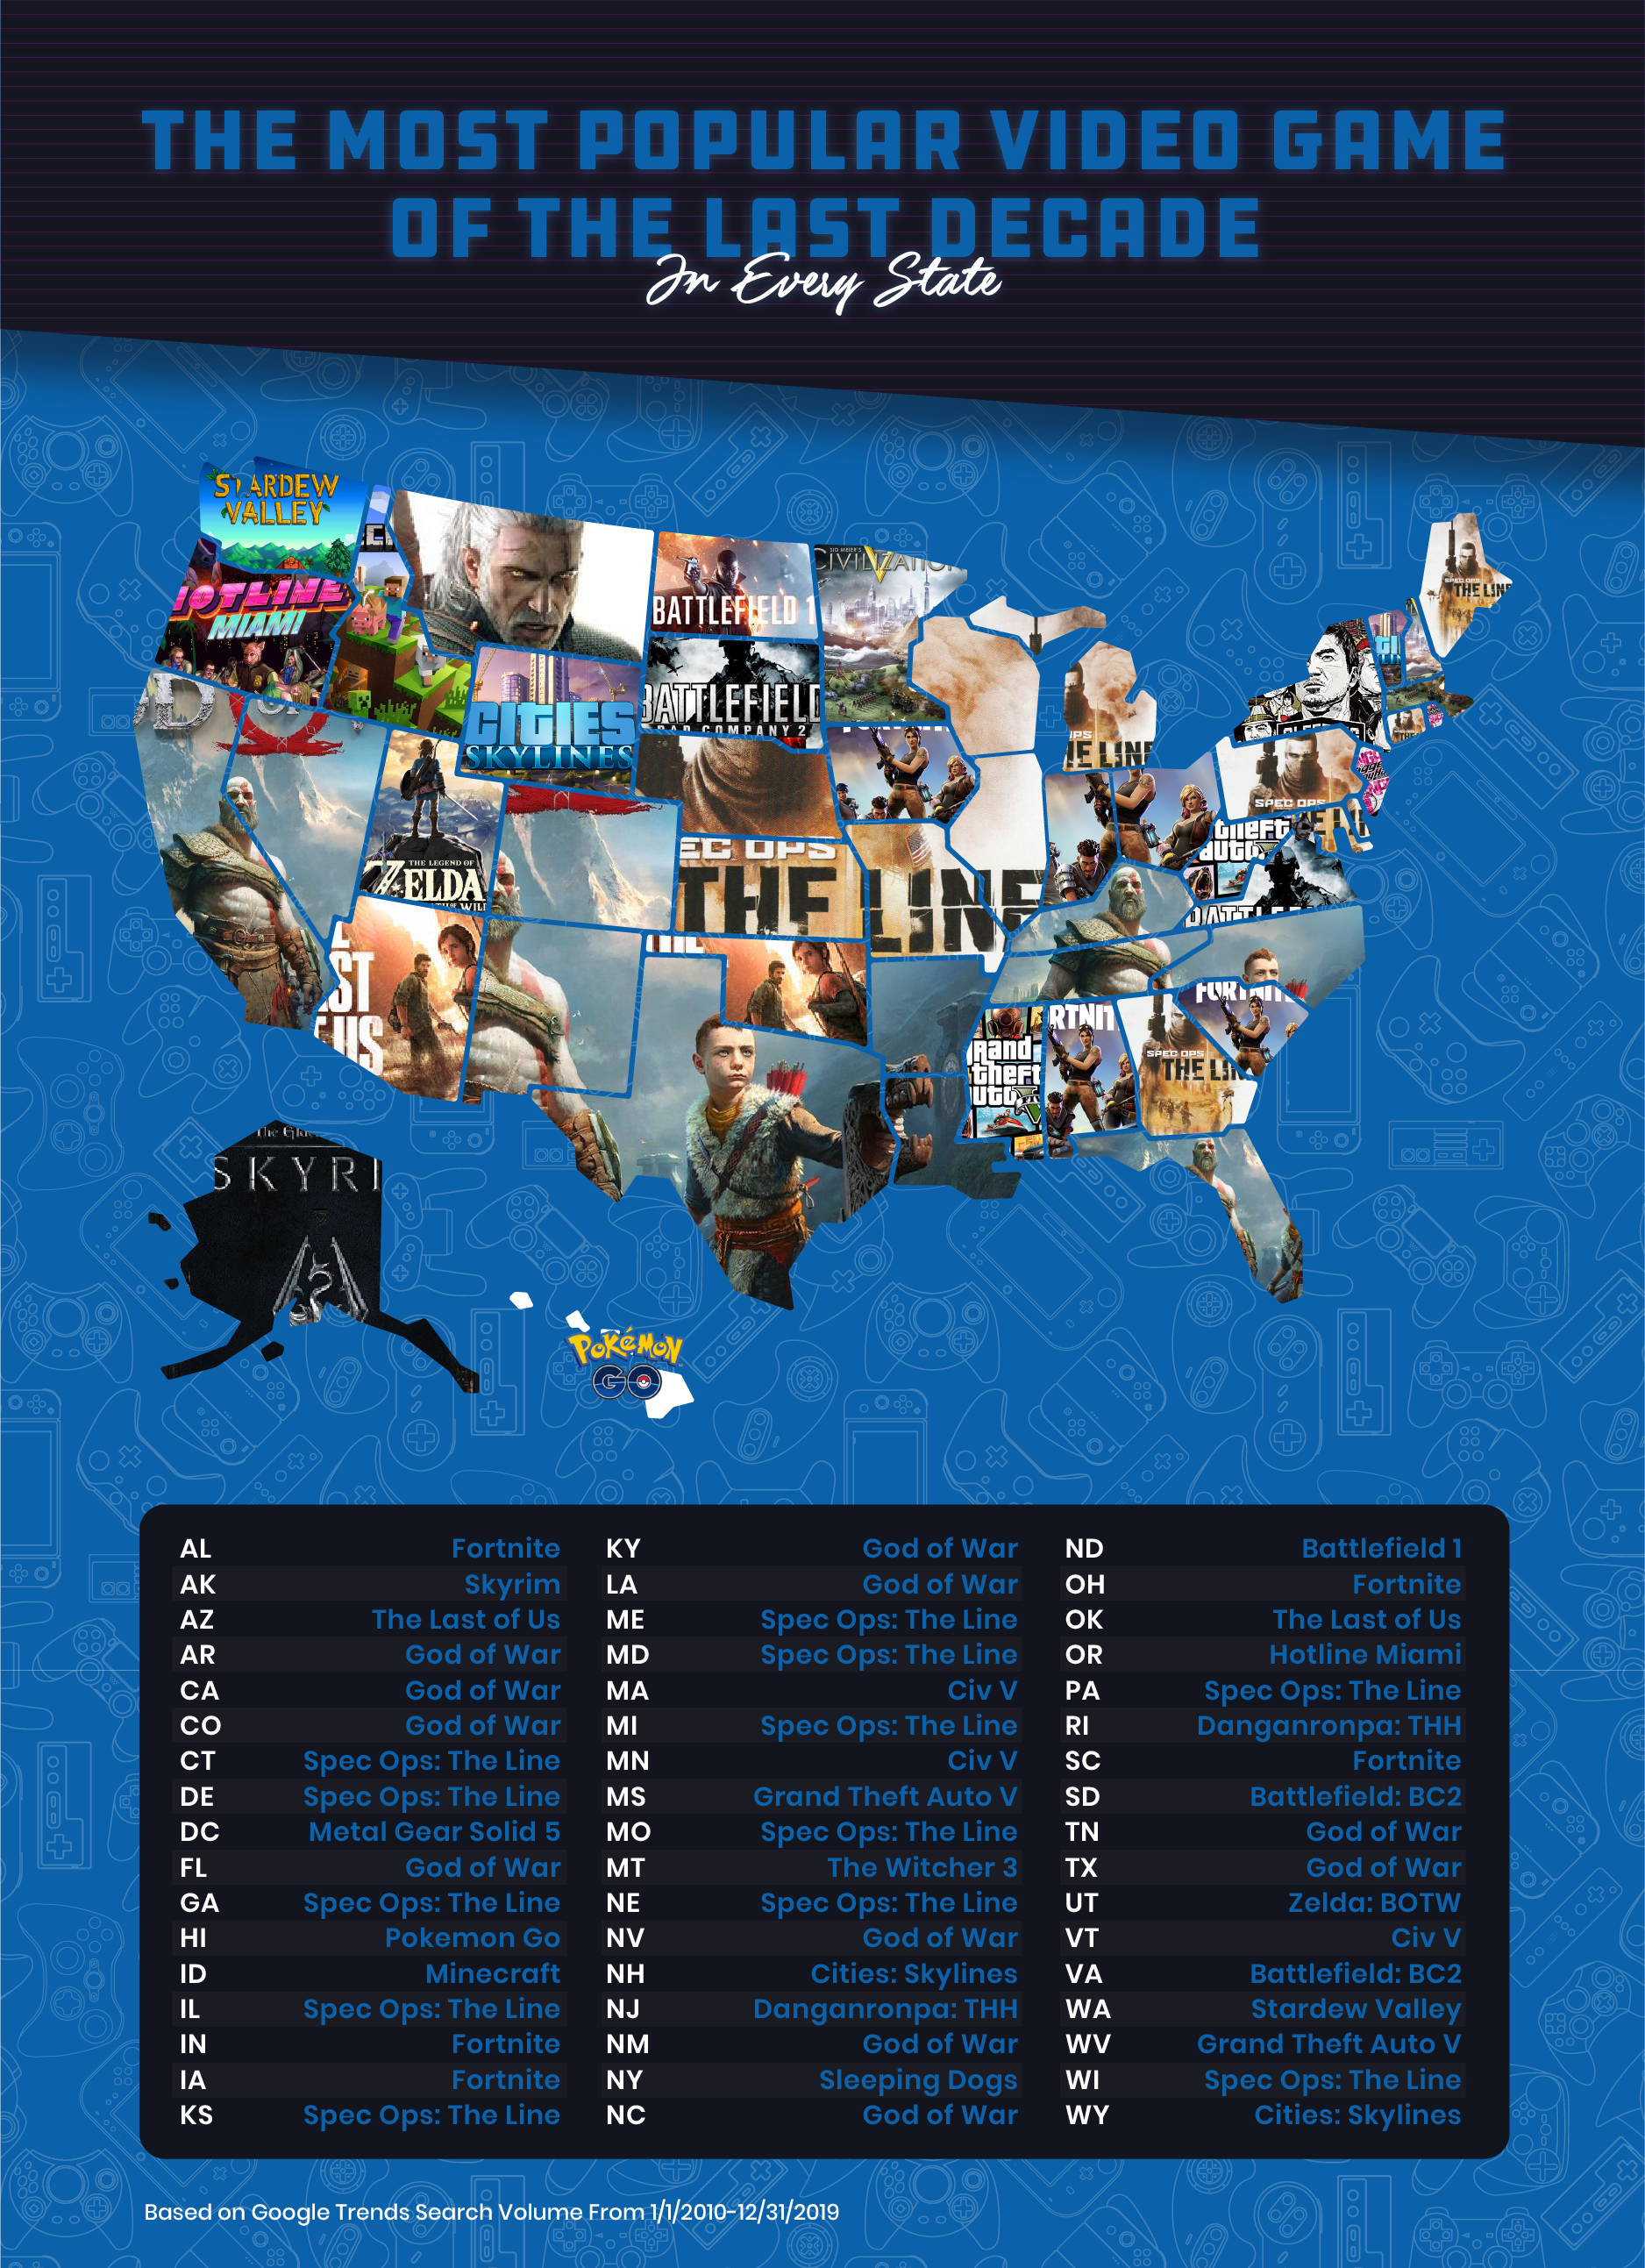 US map showing the most popular video games of the last decade by state